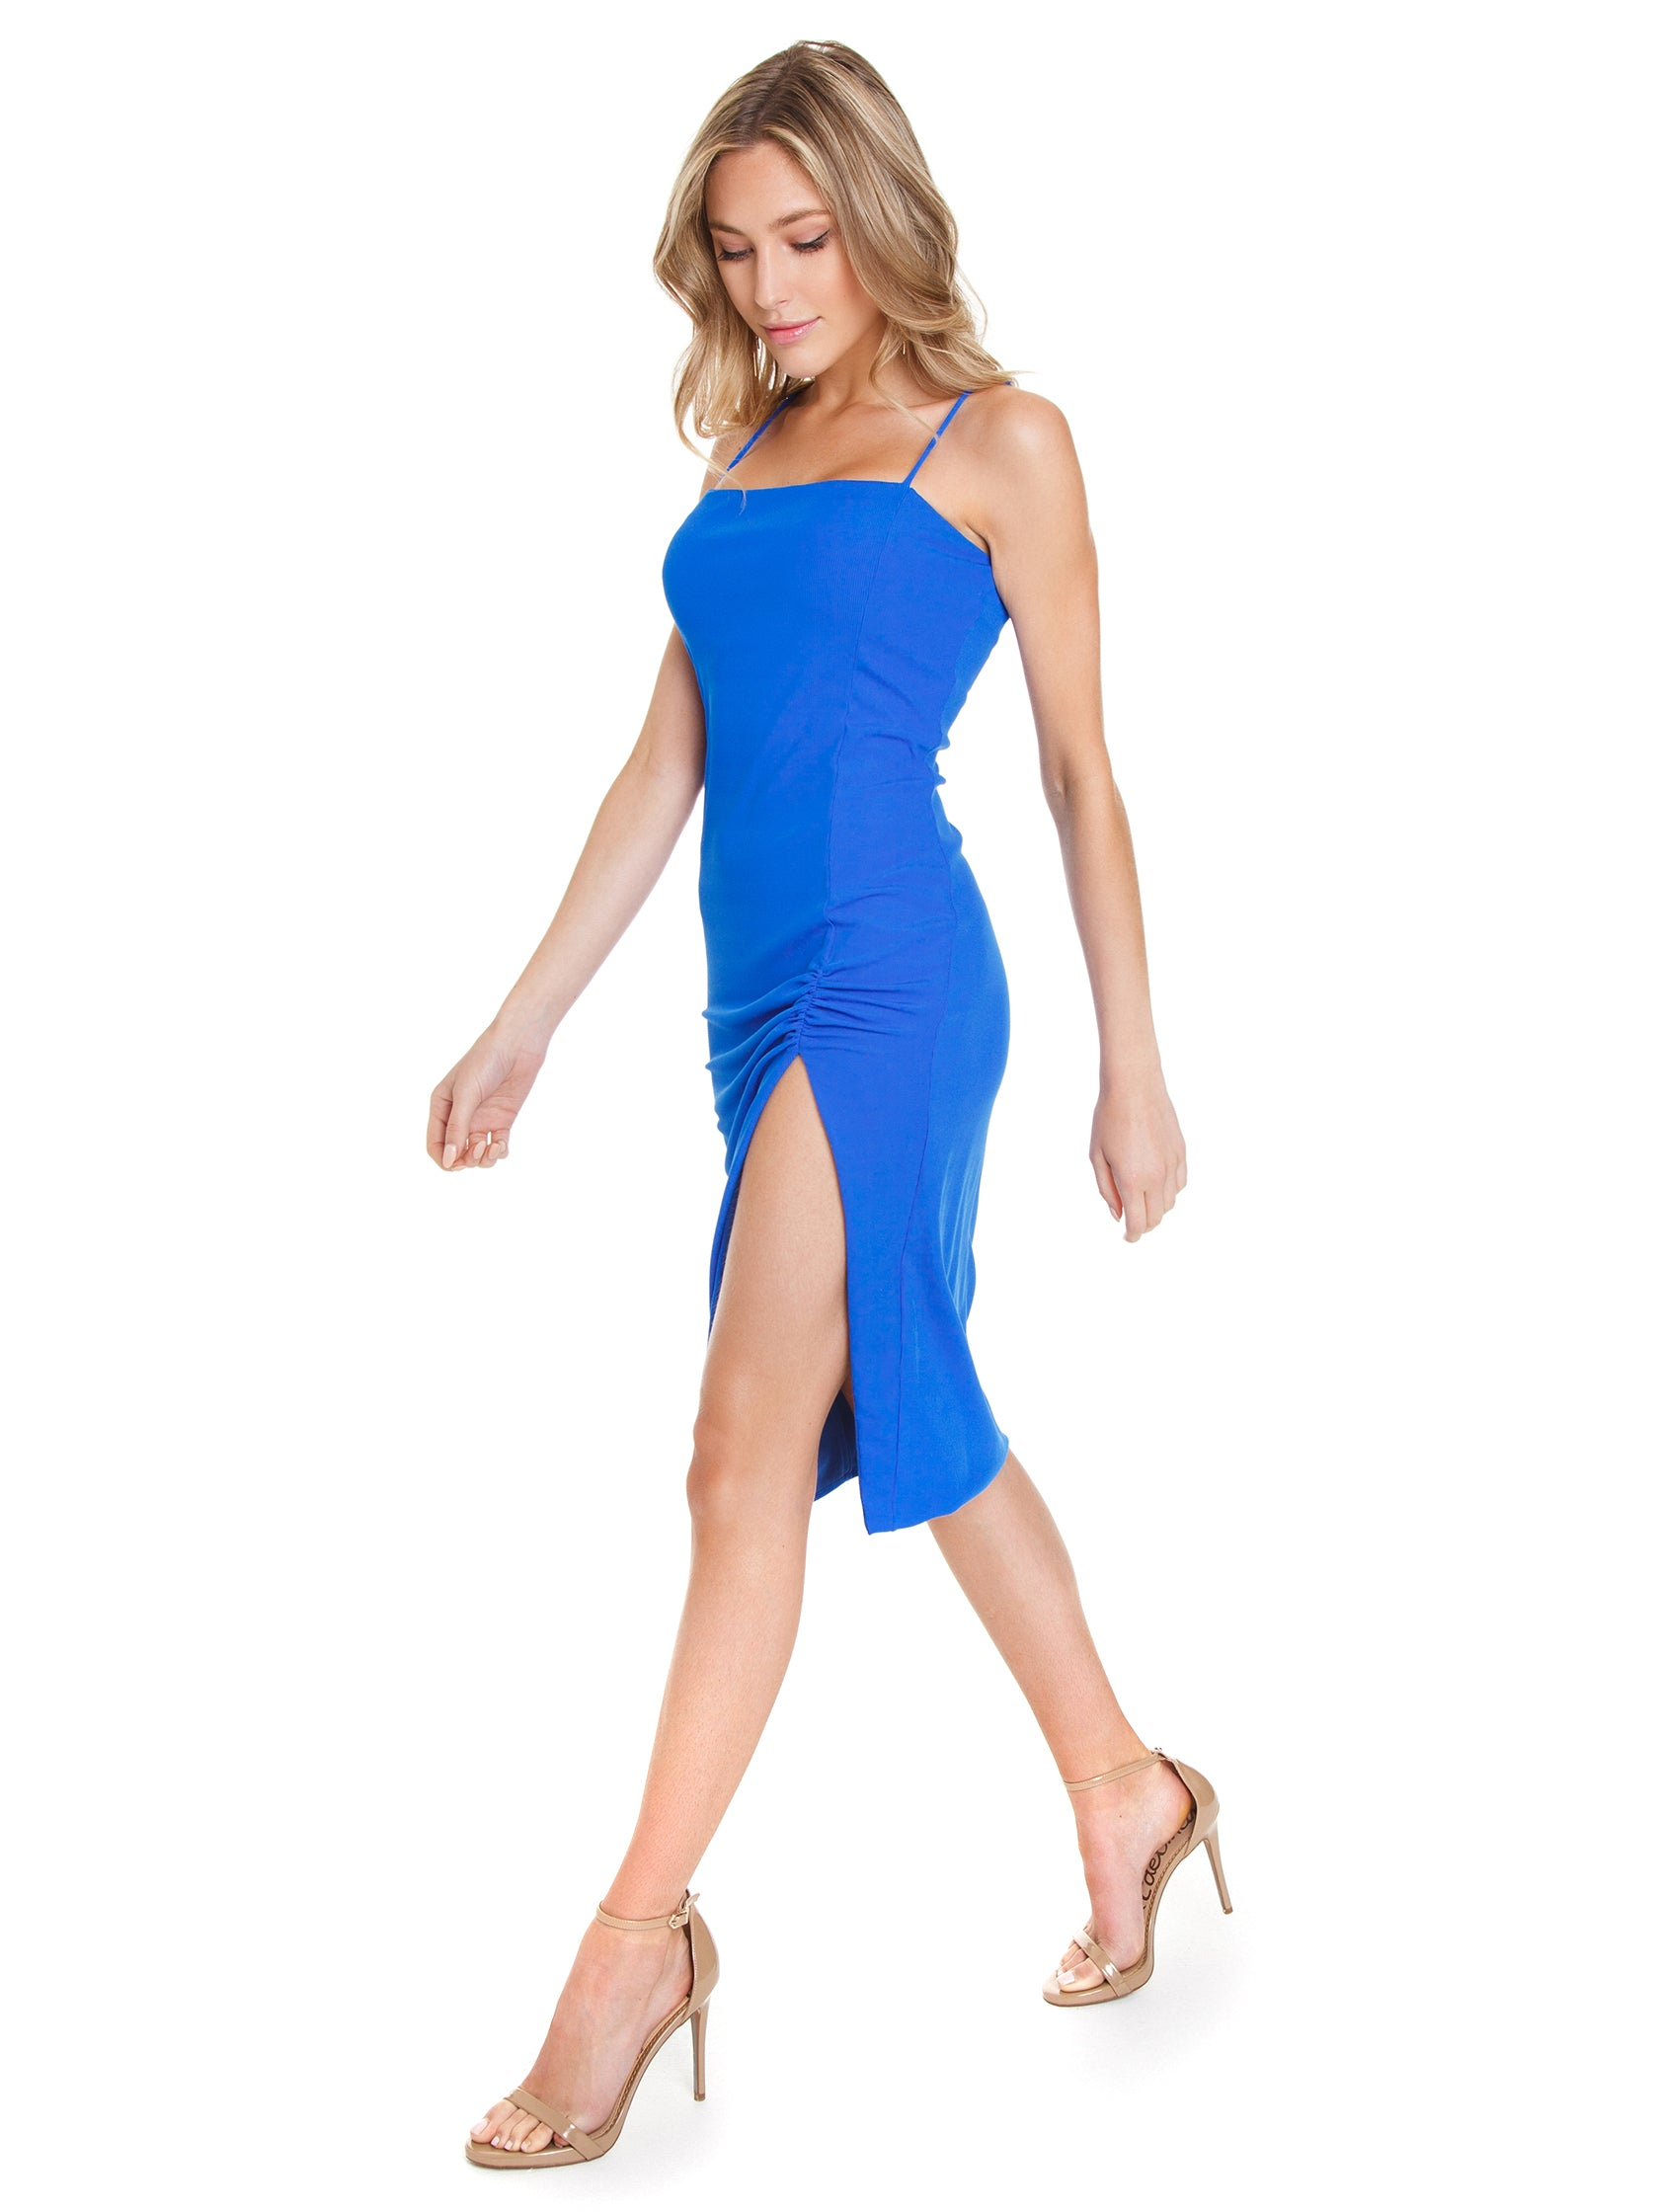 Women wearing a dress rental from FLETCH called Valentina Rib Bodycon Dress